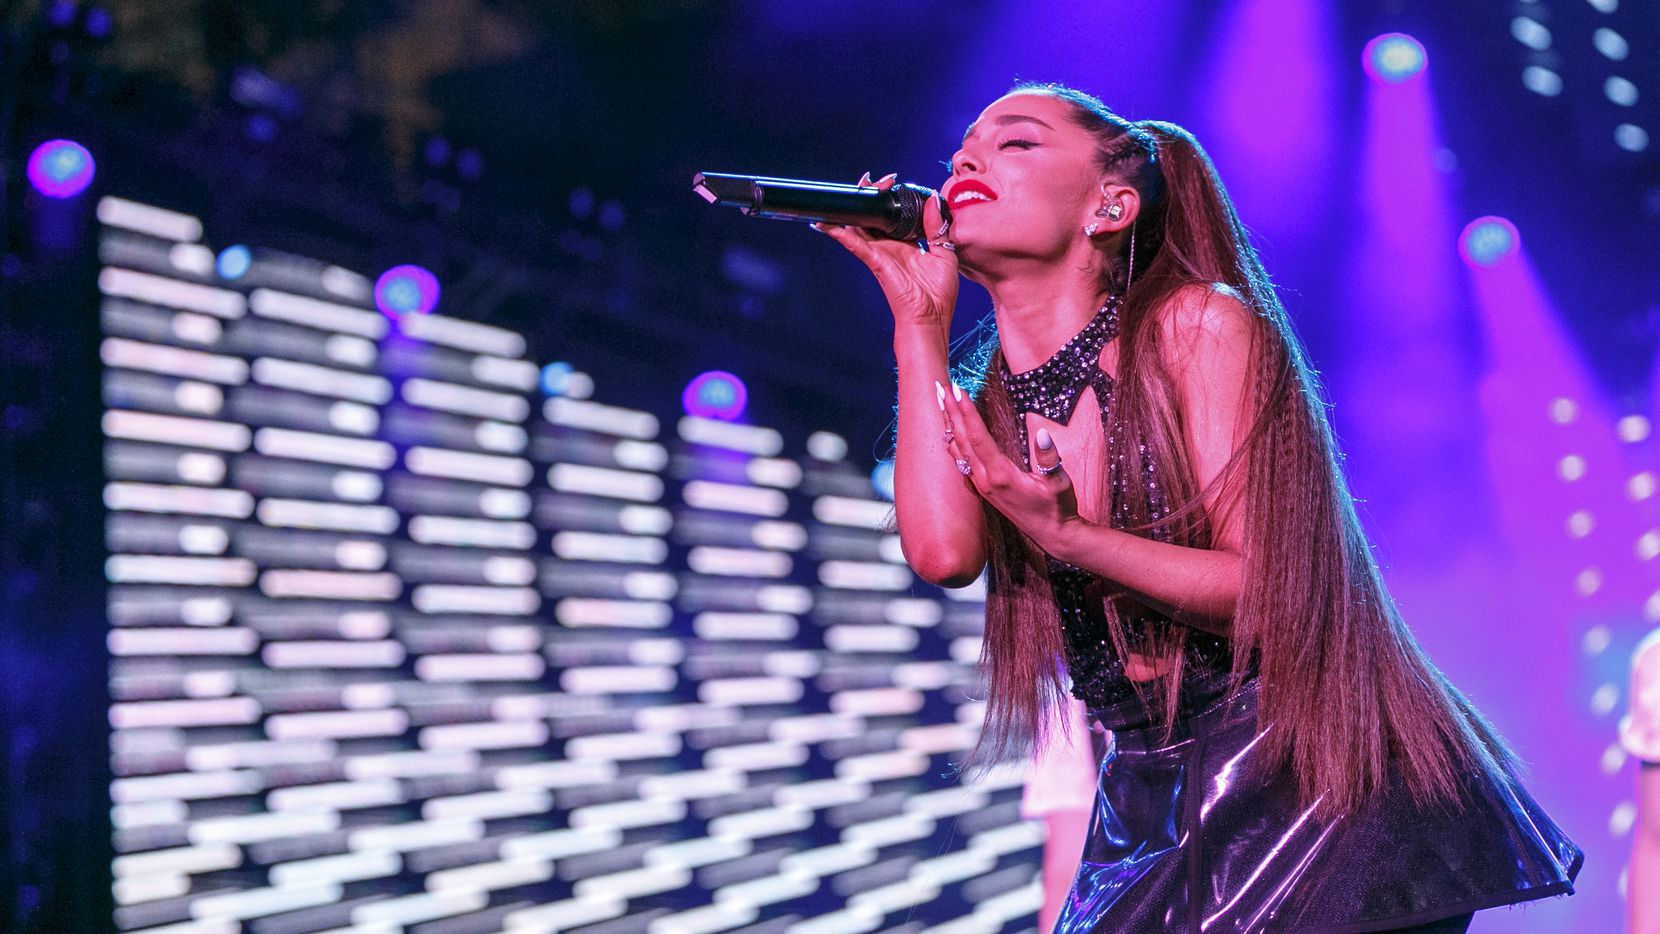 Ariana Grande performs onstage during the 2018 iHeartRadio Wango Tango by AT&T at Banc of California Stadium on June 2, 2018 in Los Angeles, Calif.